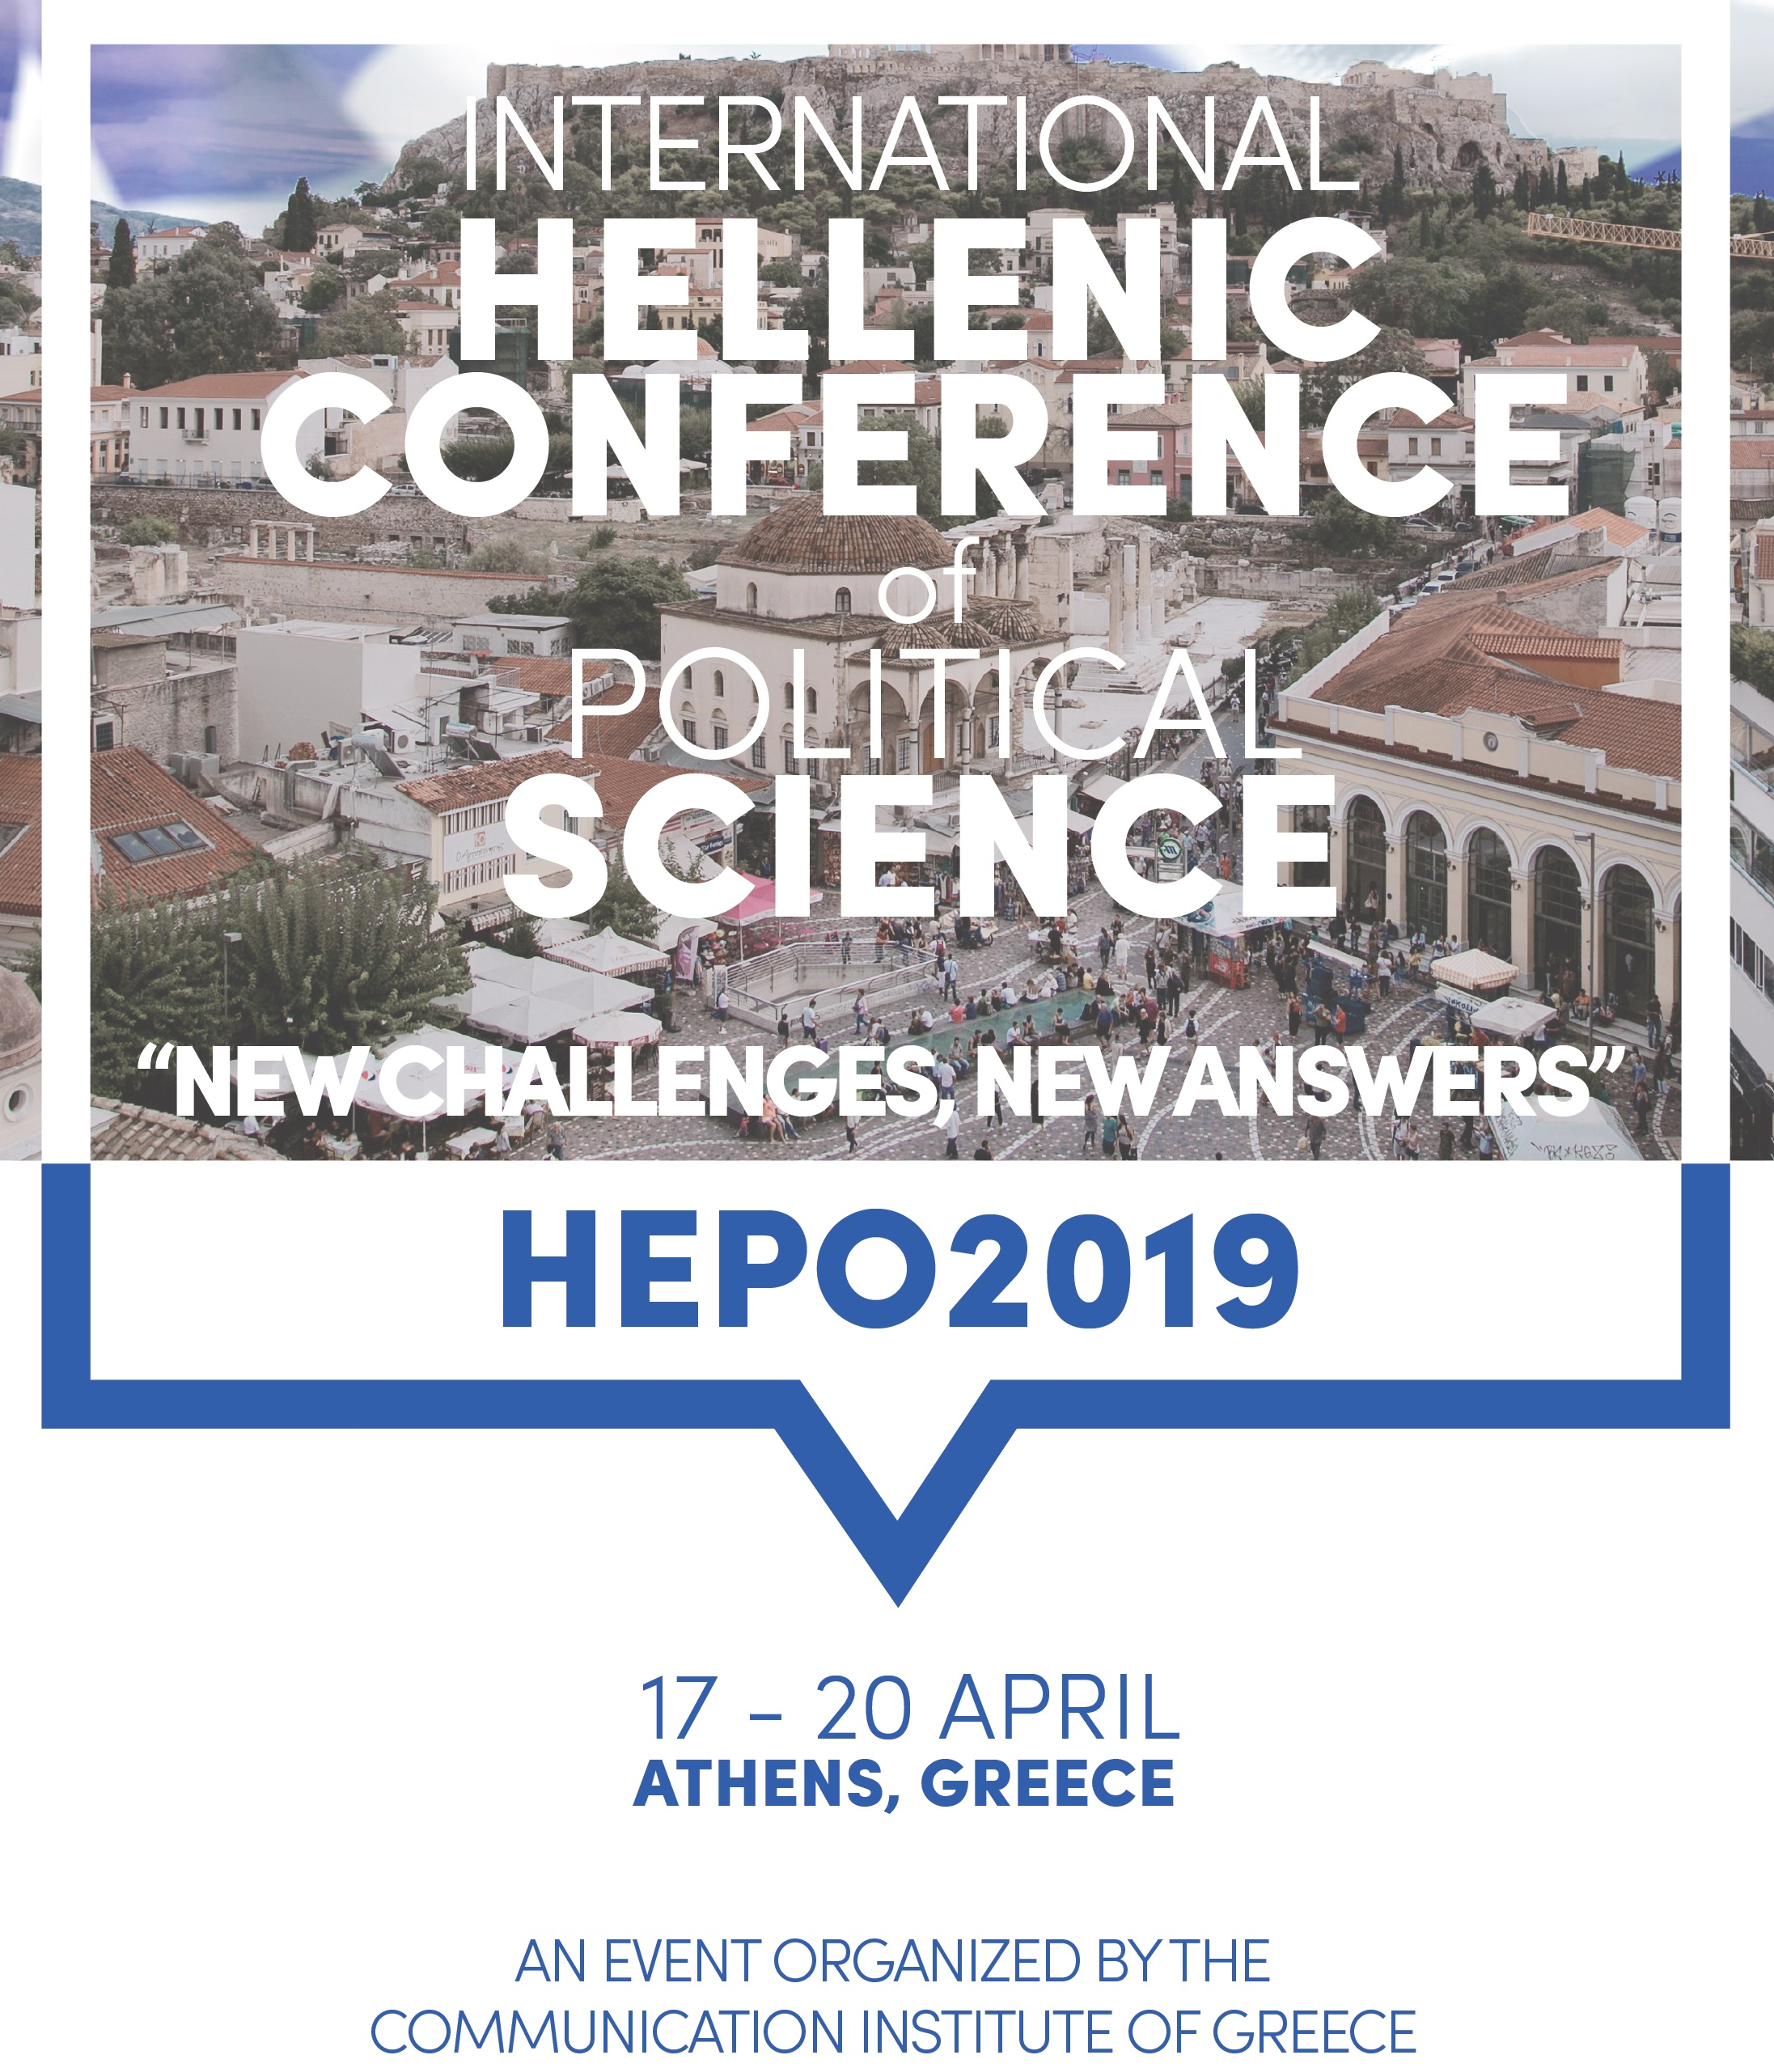 International Hellenic conference of political science: New Challenges, New Answers (HEPO2019), Athens, Attica, Greece